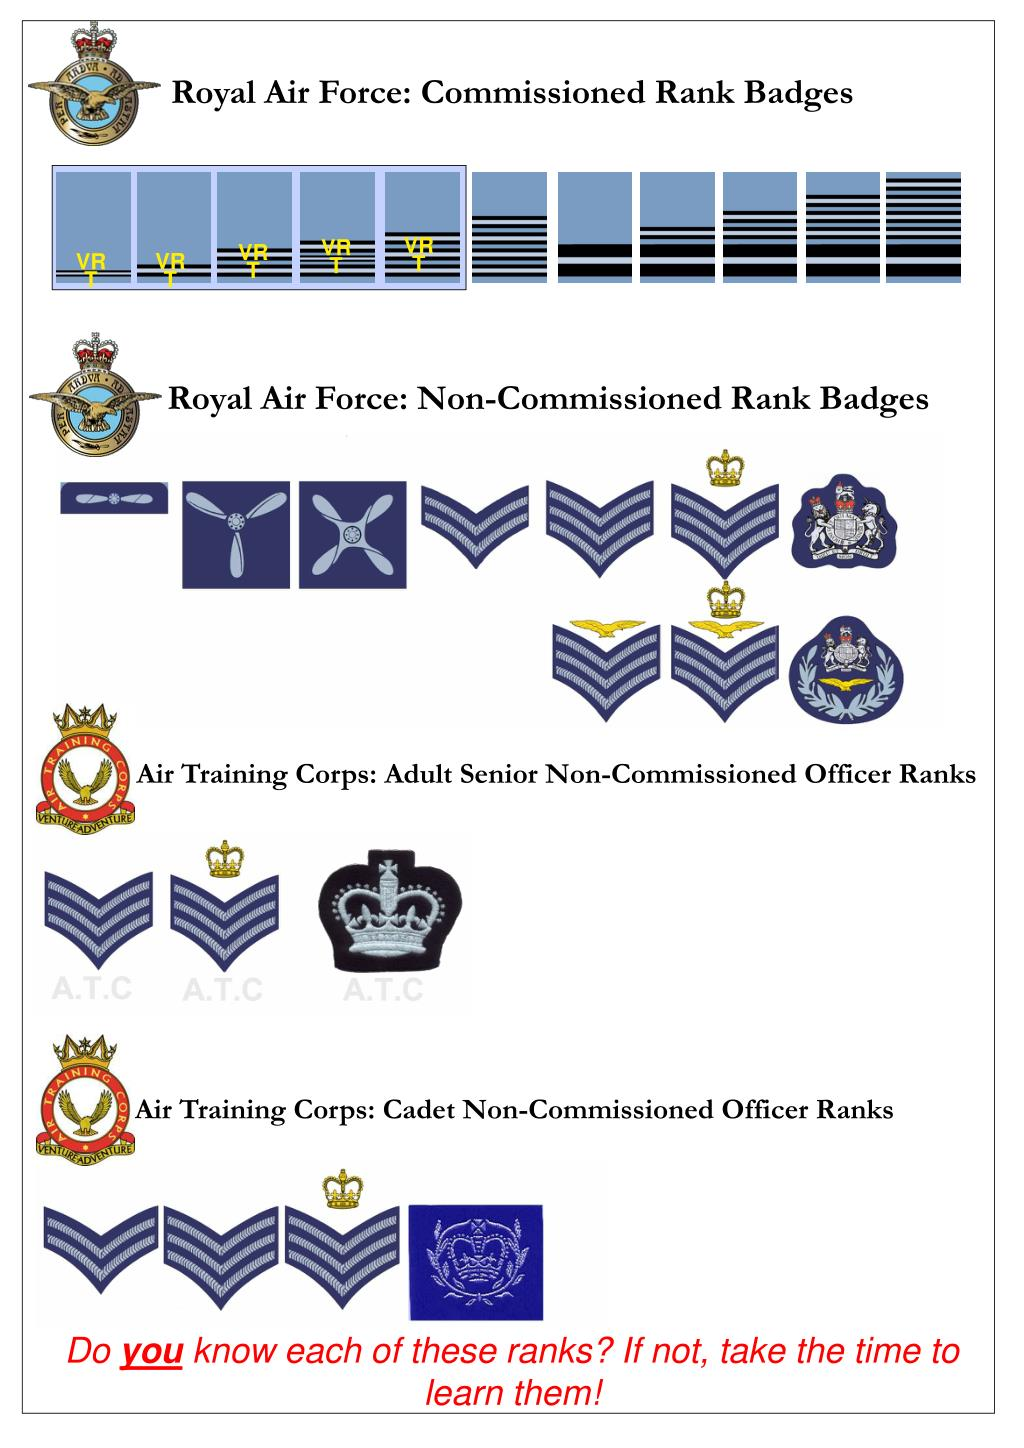 PPT - Royal Air Force: Commissioned Rank Badges PowerPoint